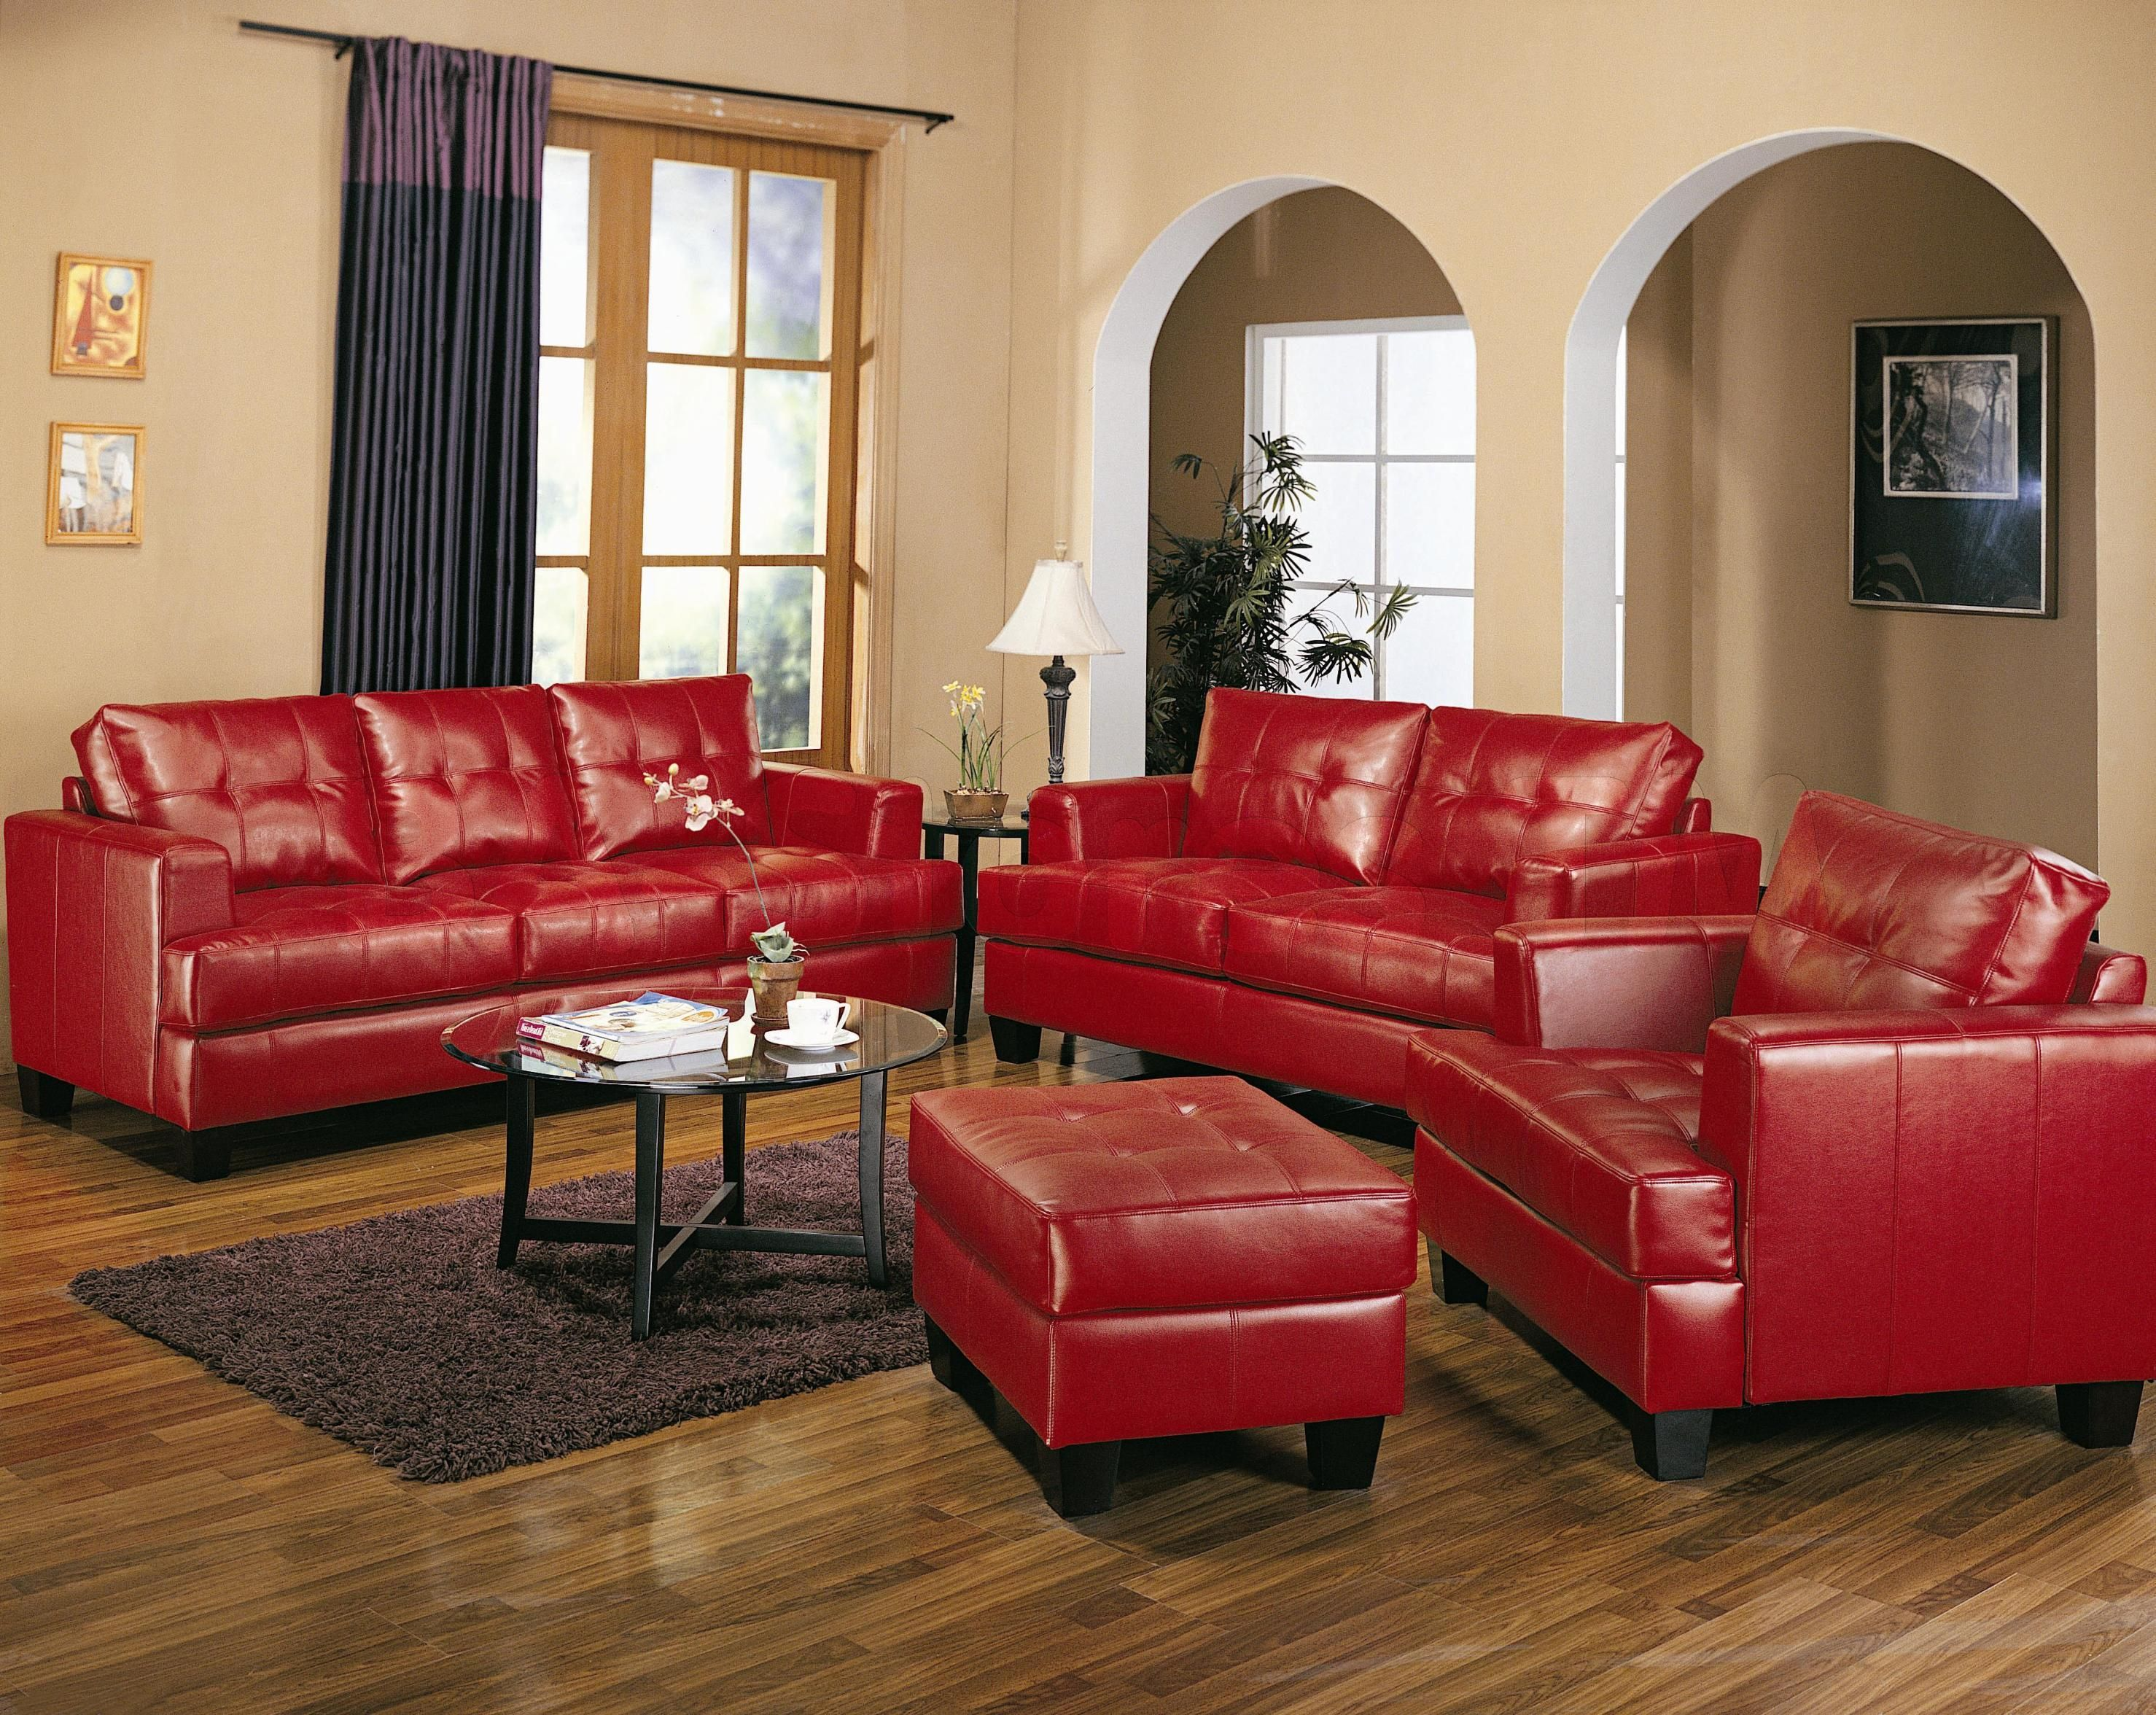 Awesome Red Leather Living Room Furniture Elegant Red Leather